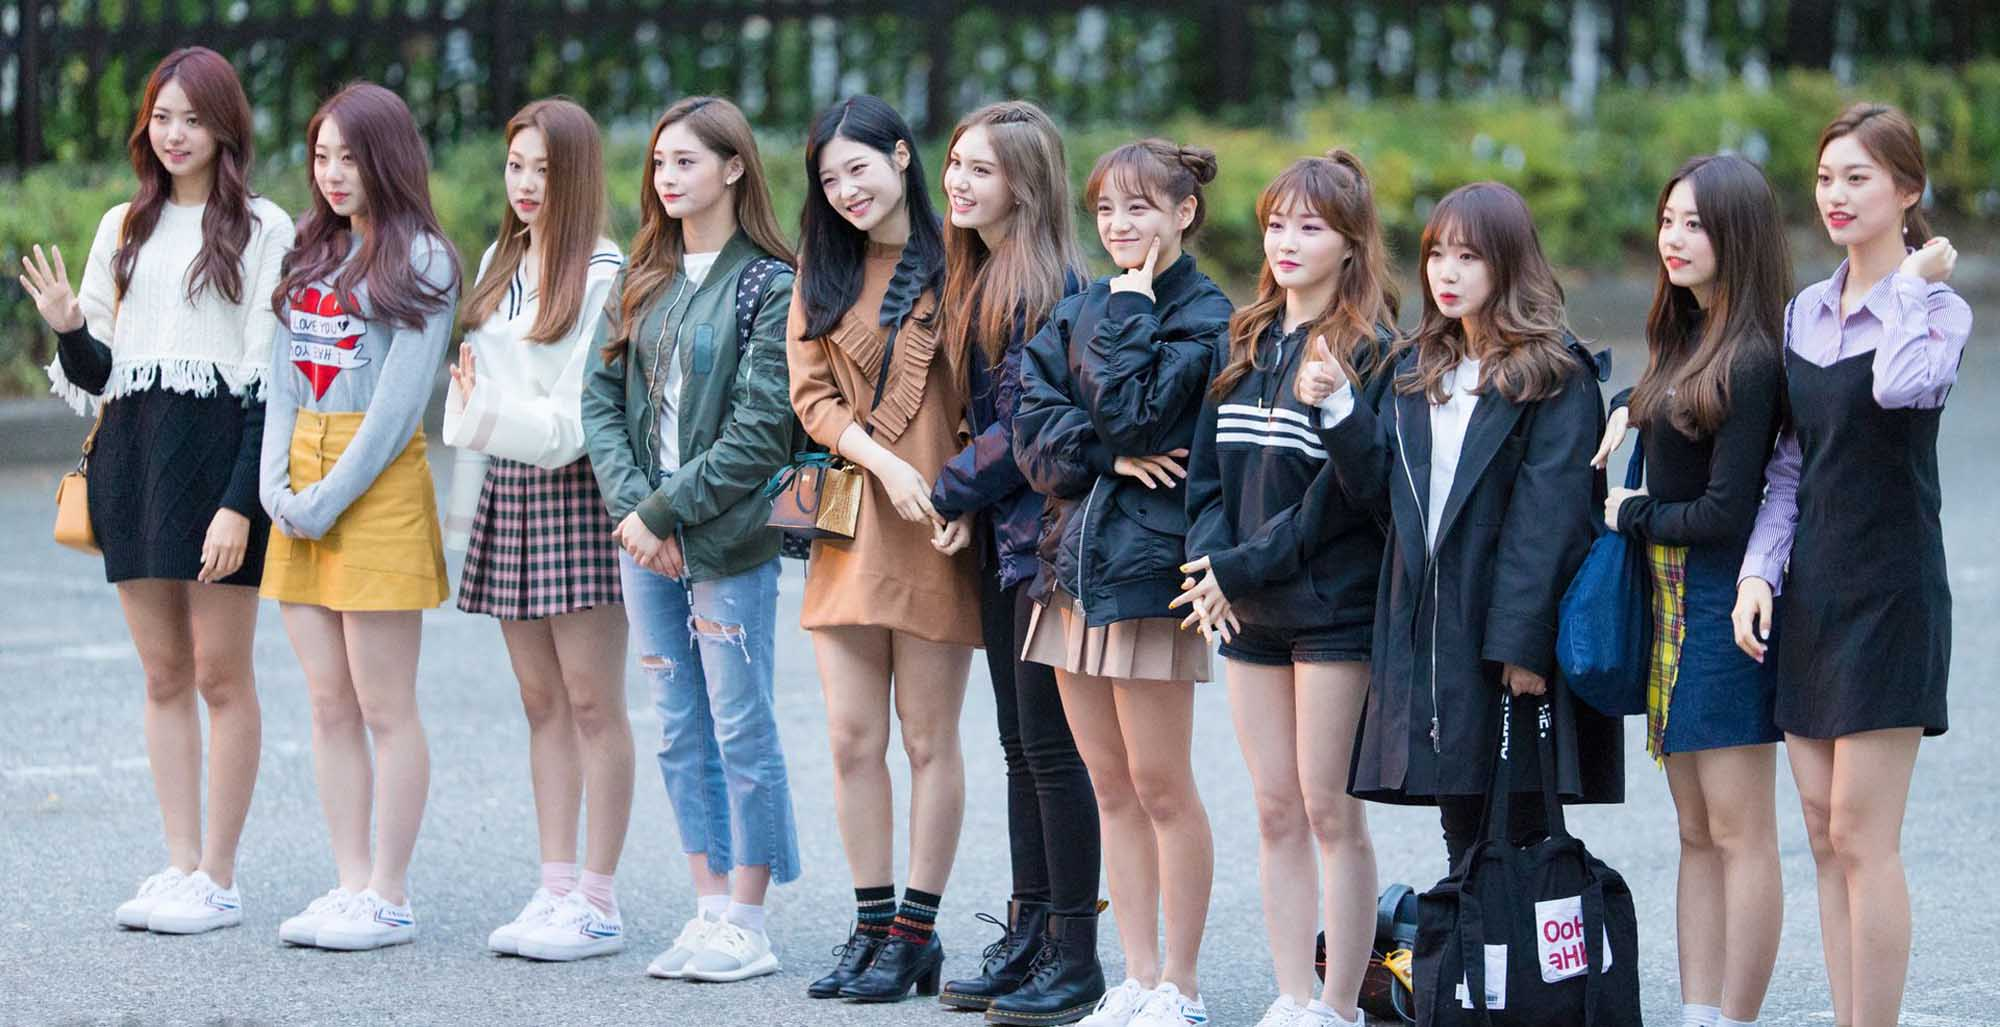 Pop produce: The group IOI, or Ideal of Idol, was the product of the first season of Produce 101 in South Korea in 2016. | CC BY 4.0 / SHAQ PHOTO